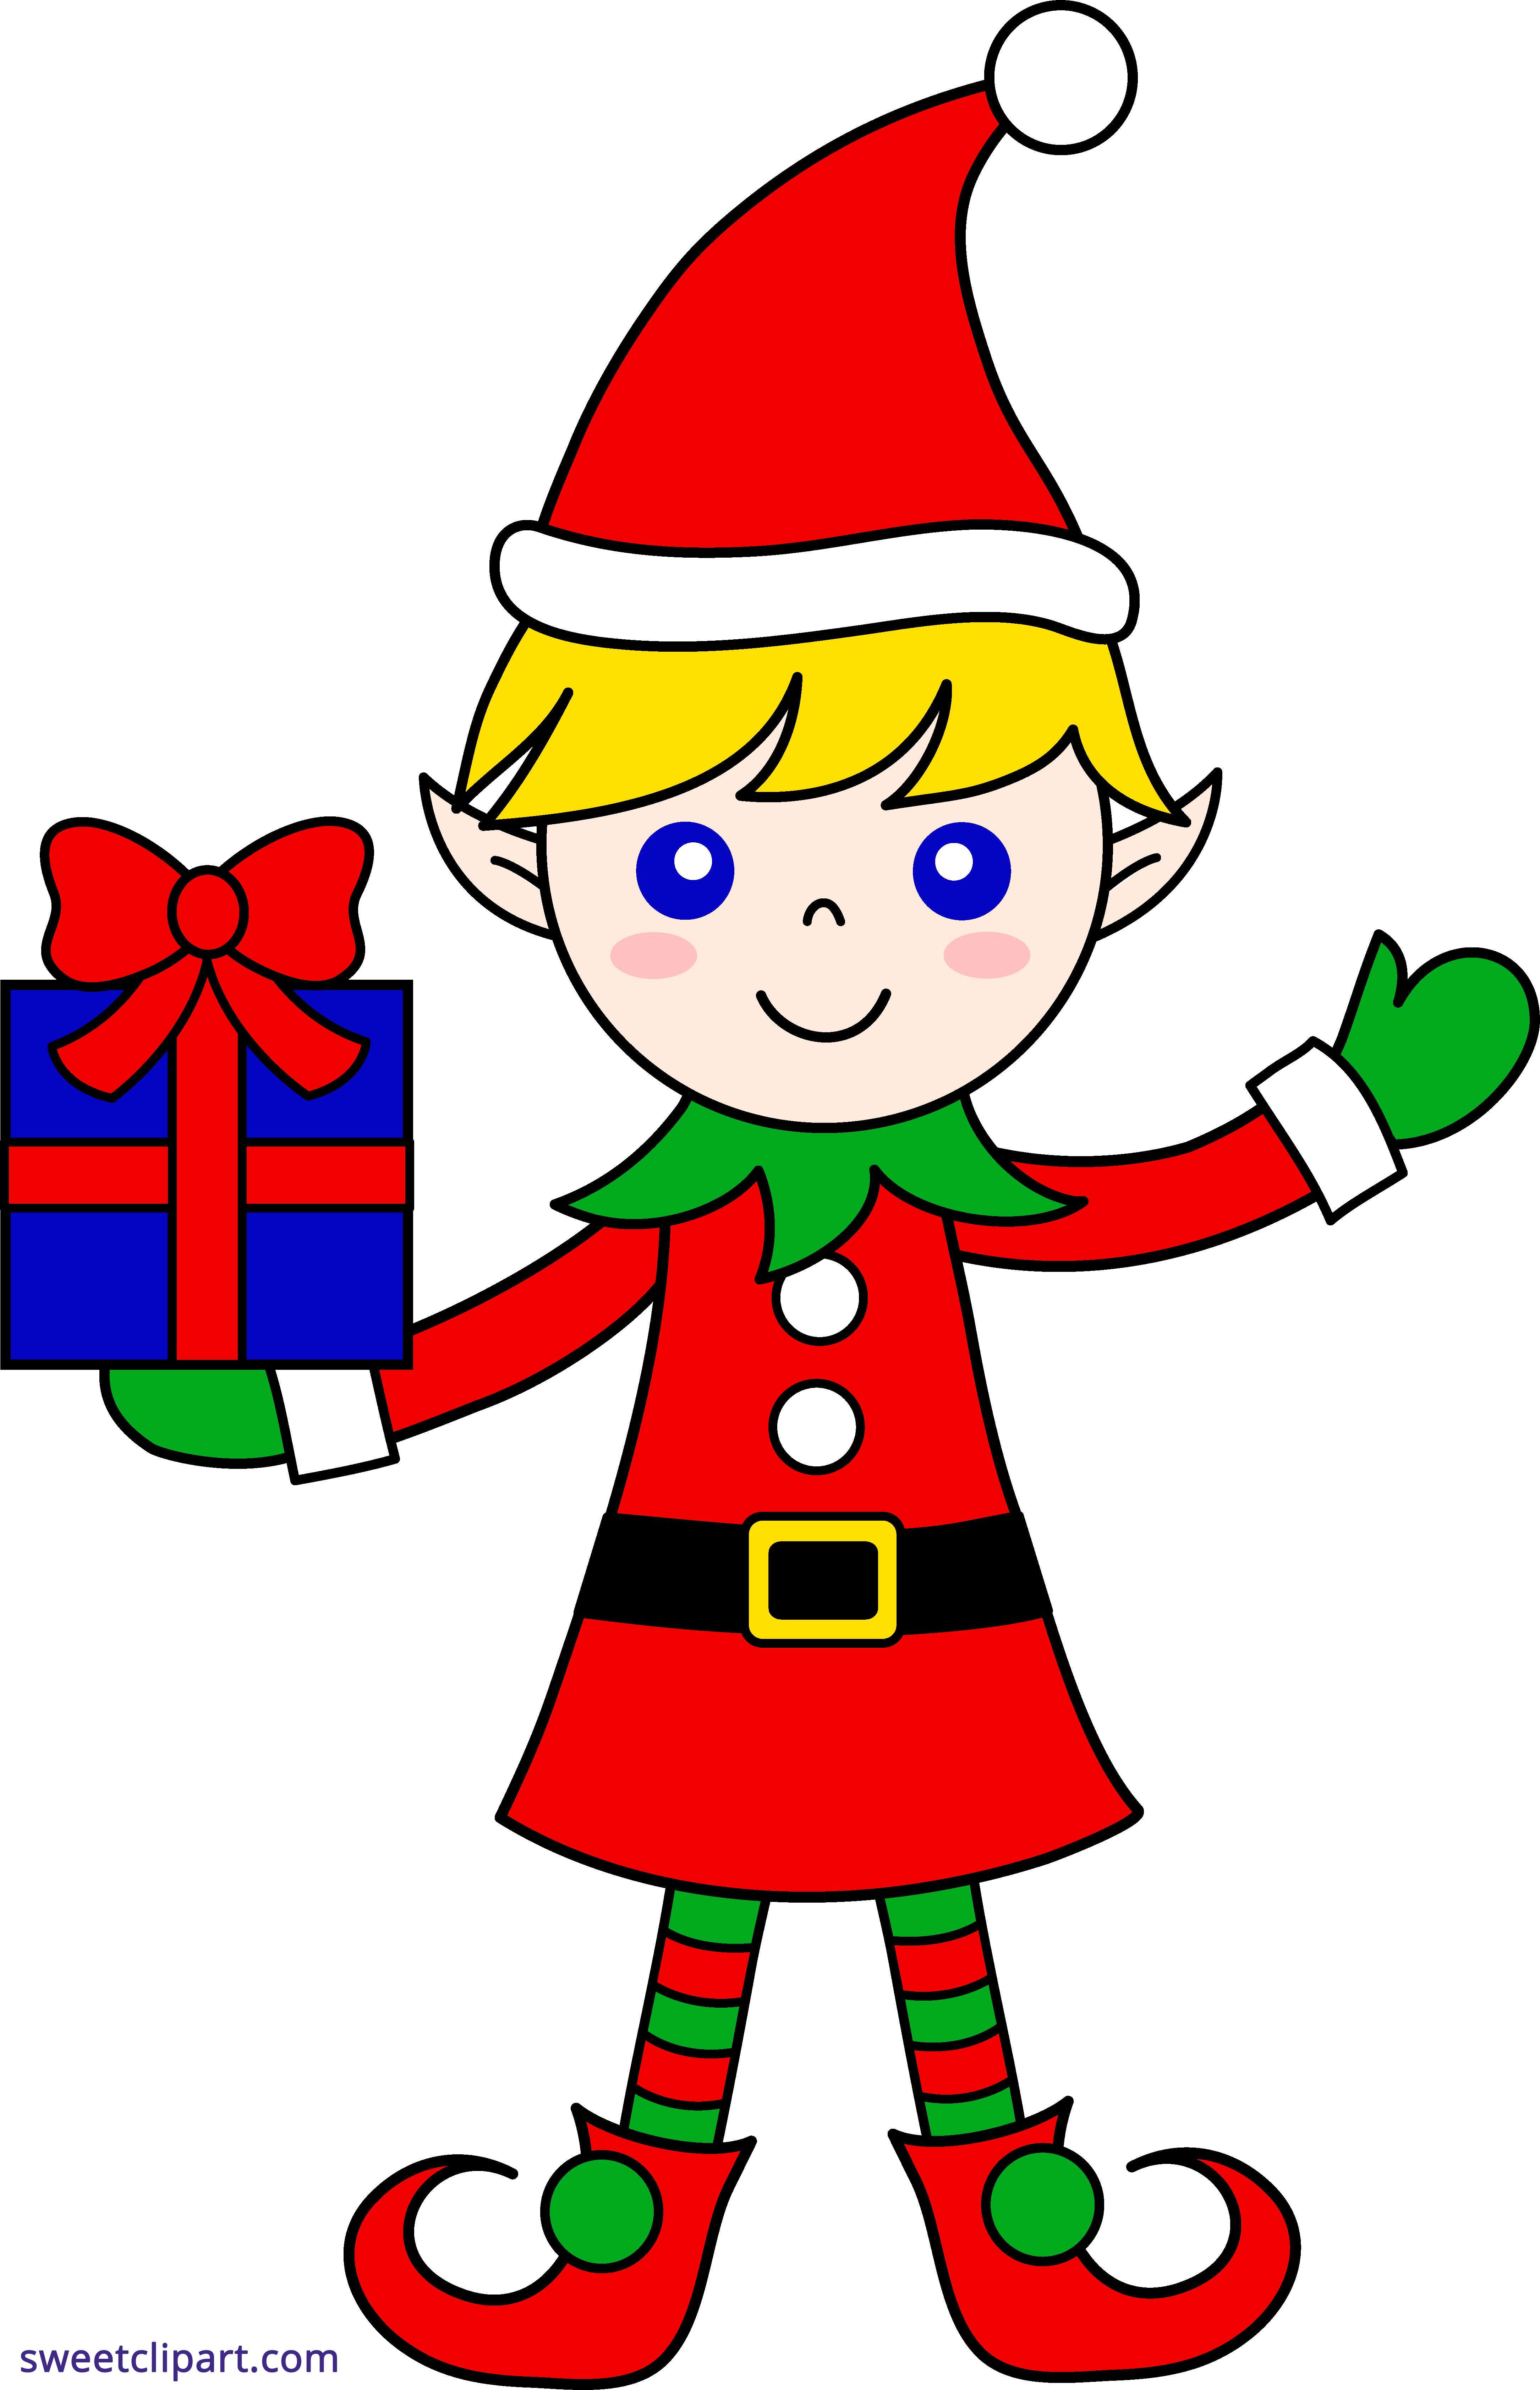 Clipart christmas elf clip art black and white library Christmas Elf Clipart - Sweet Clip Art clip art black and white library